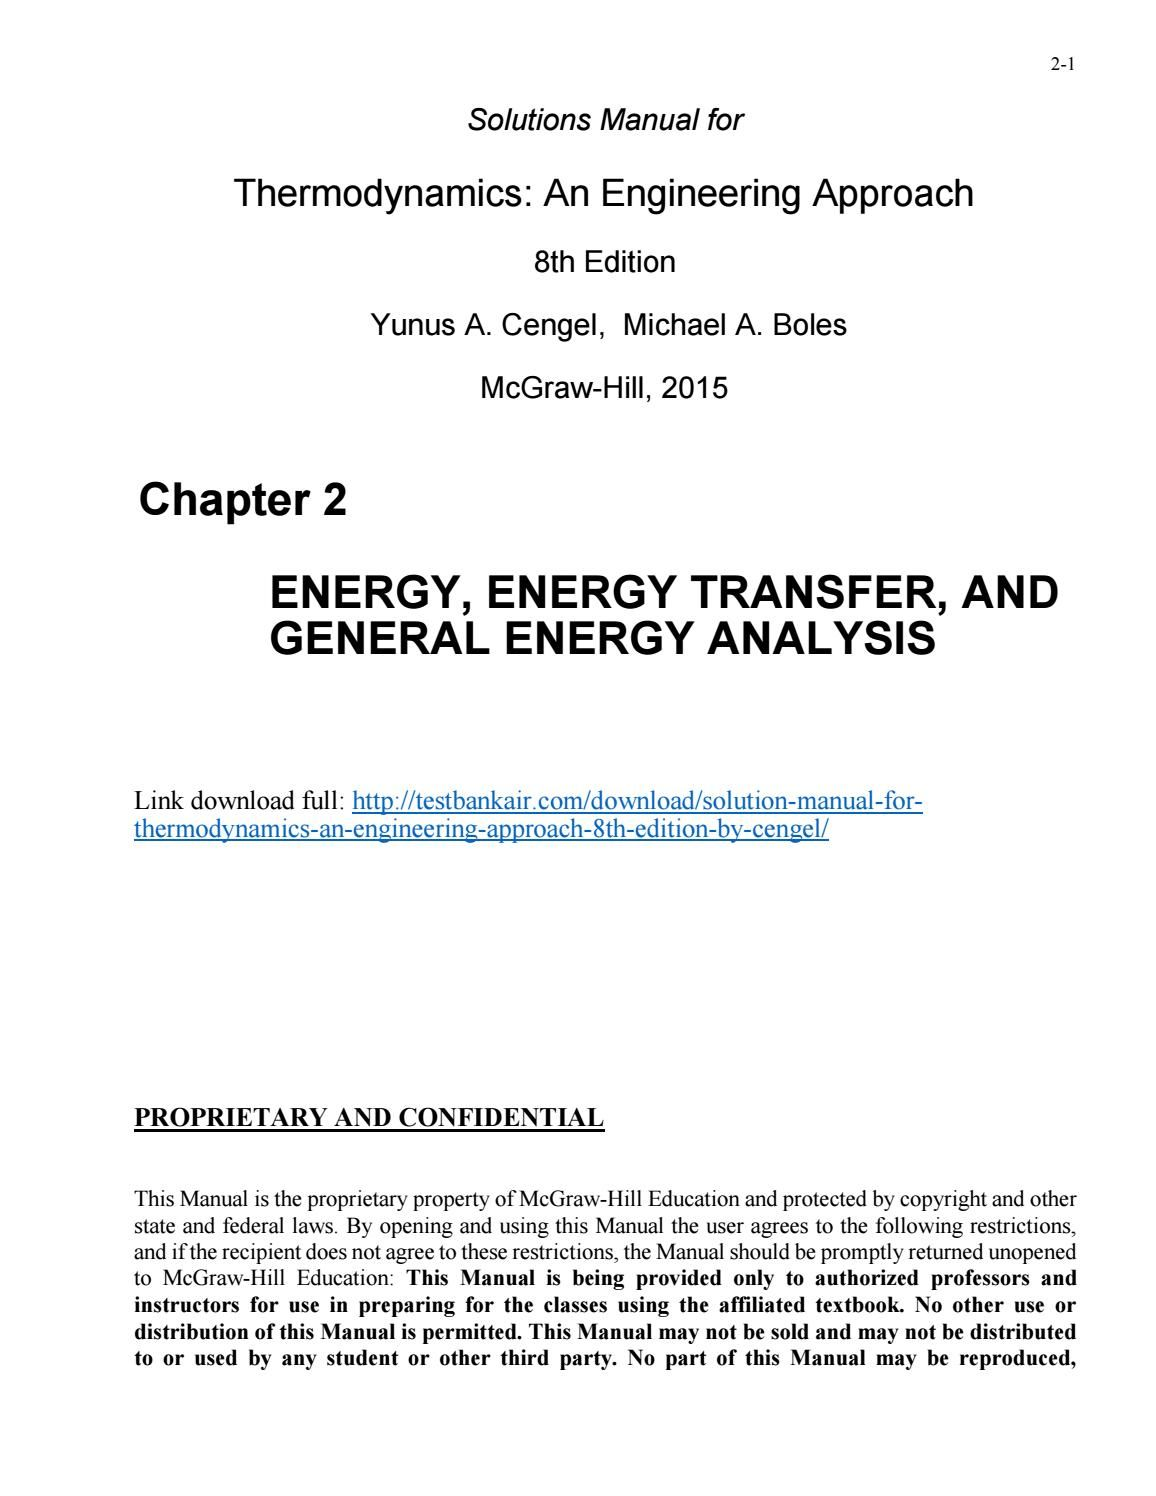 Download solution manual for thermodynamics an engineering approach 8th  edition by cengel